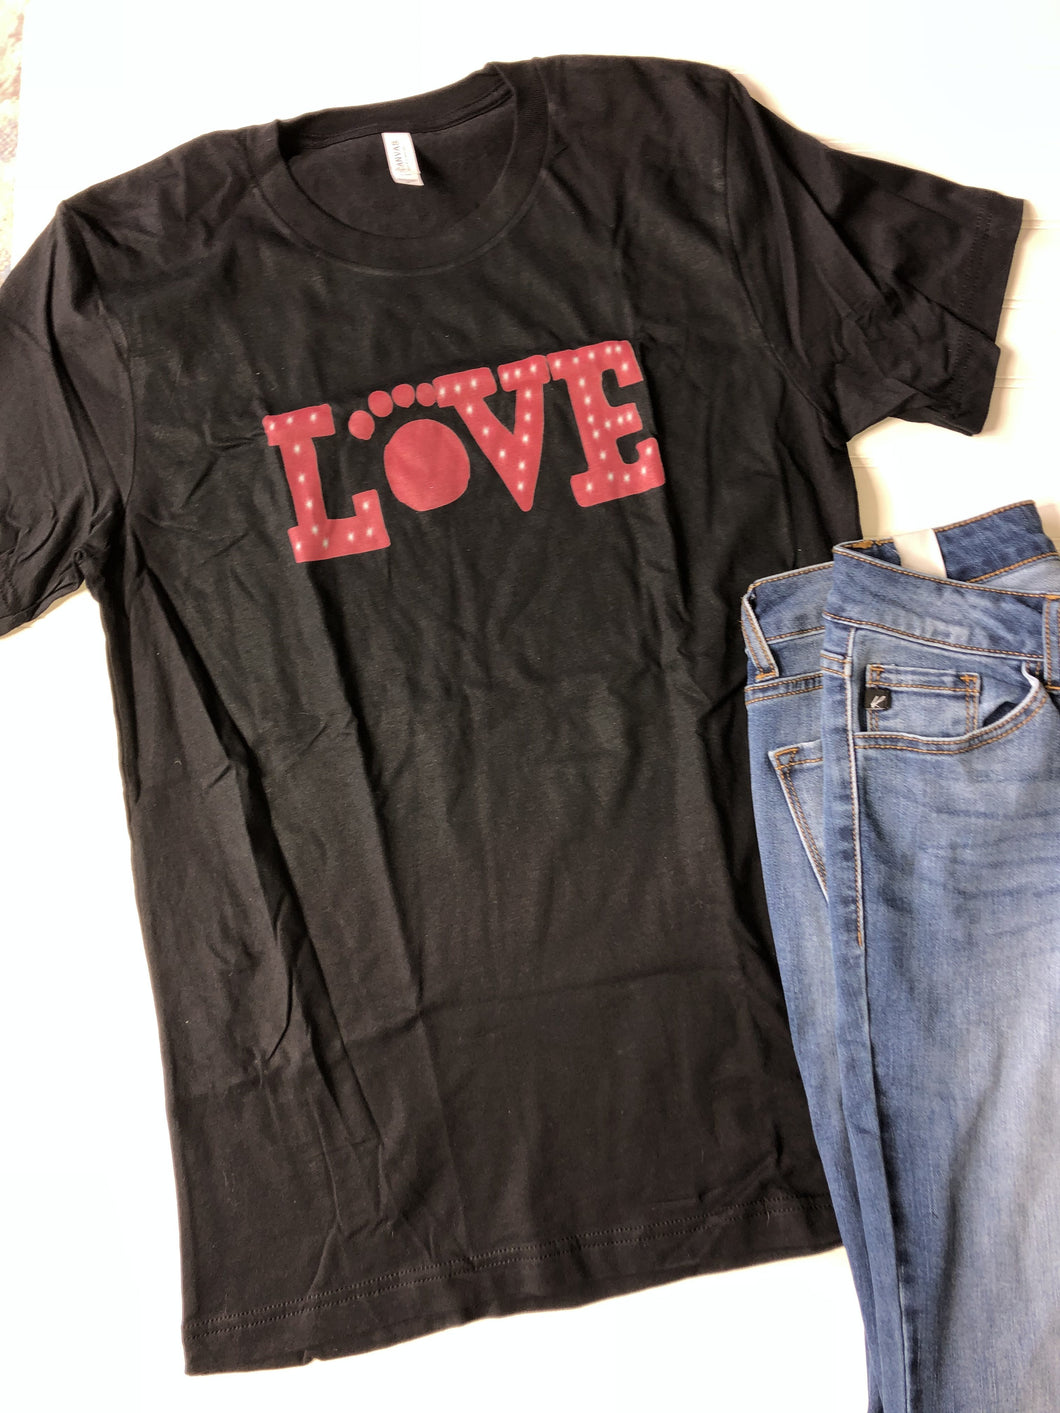 Paw print LOVE  graphic tee